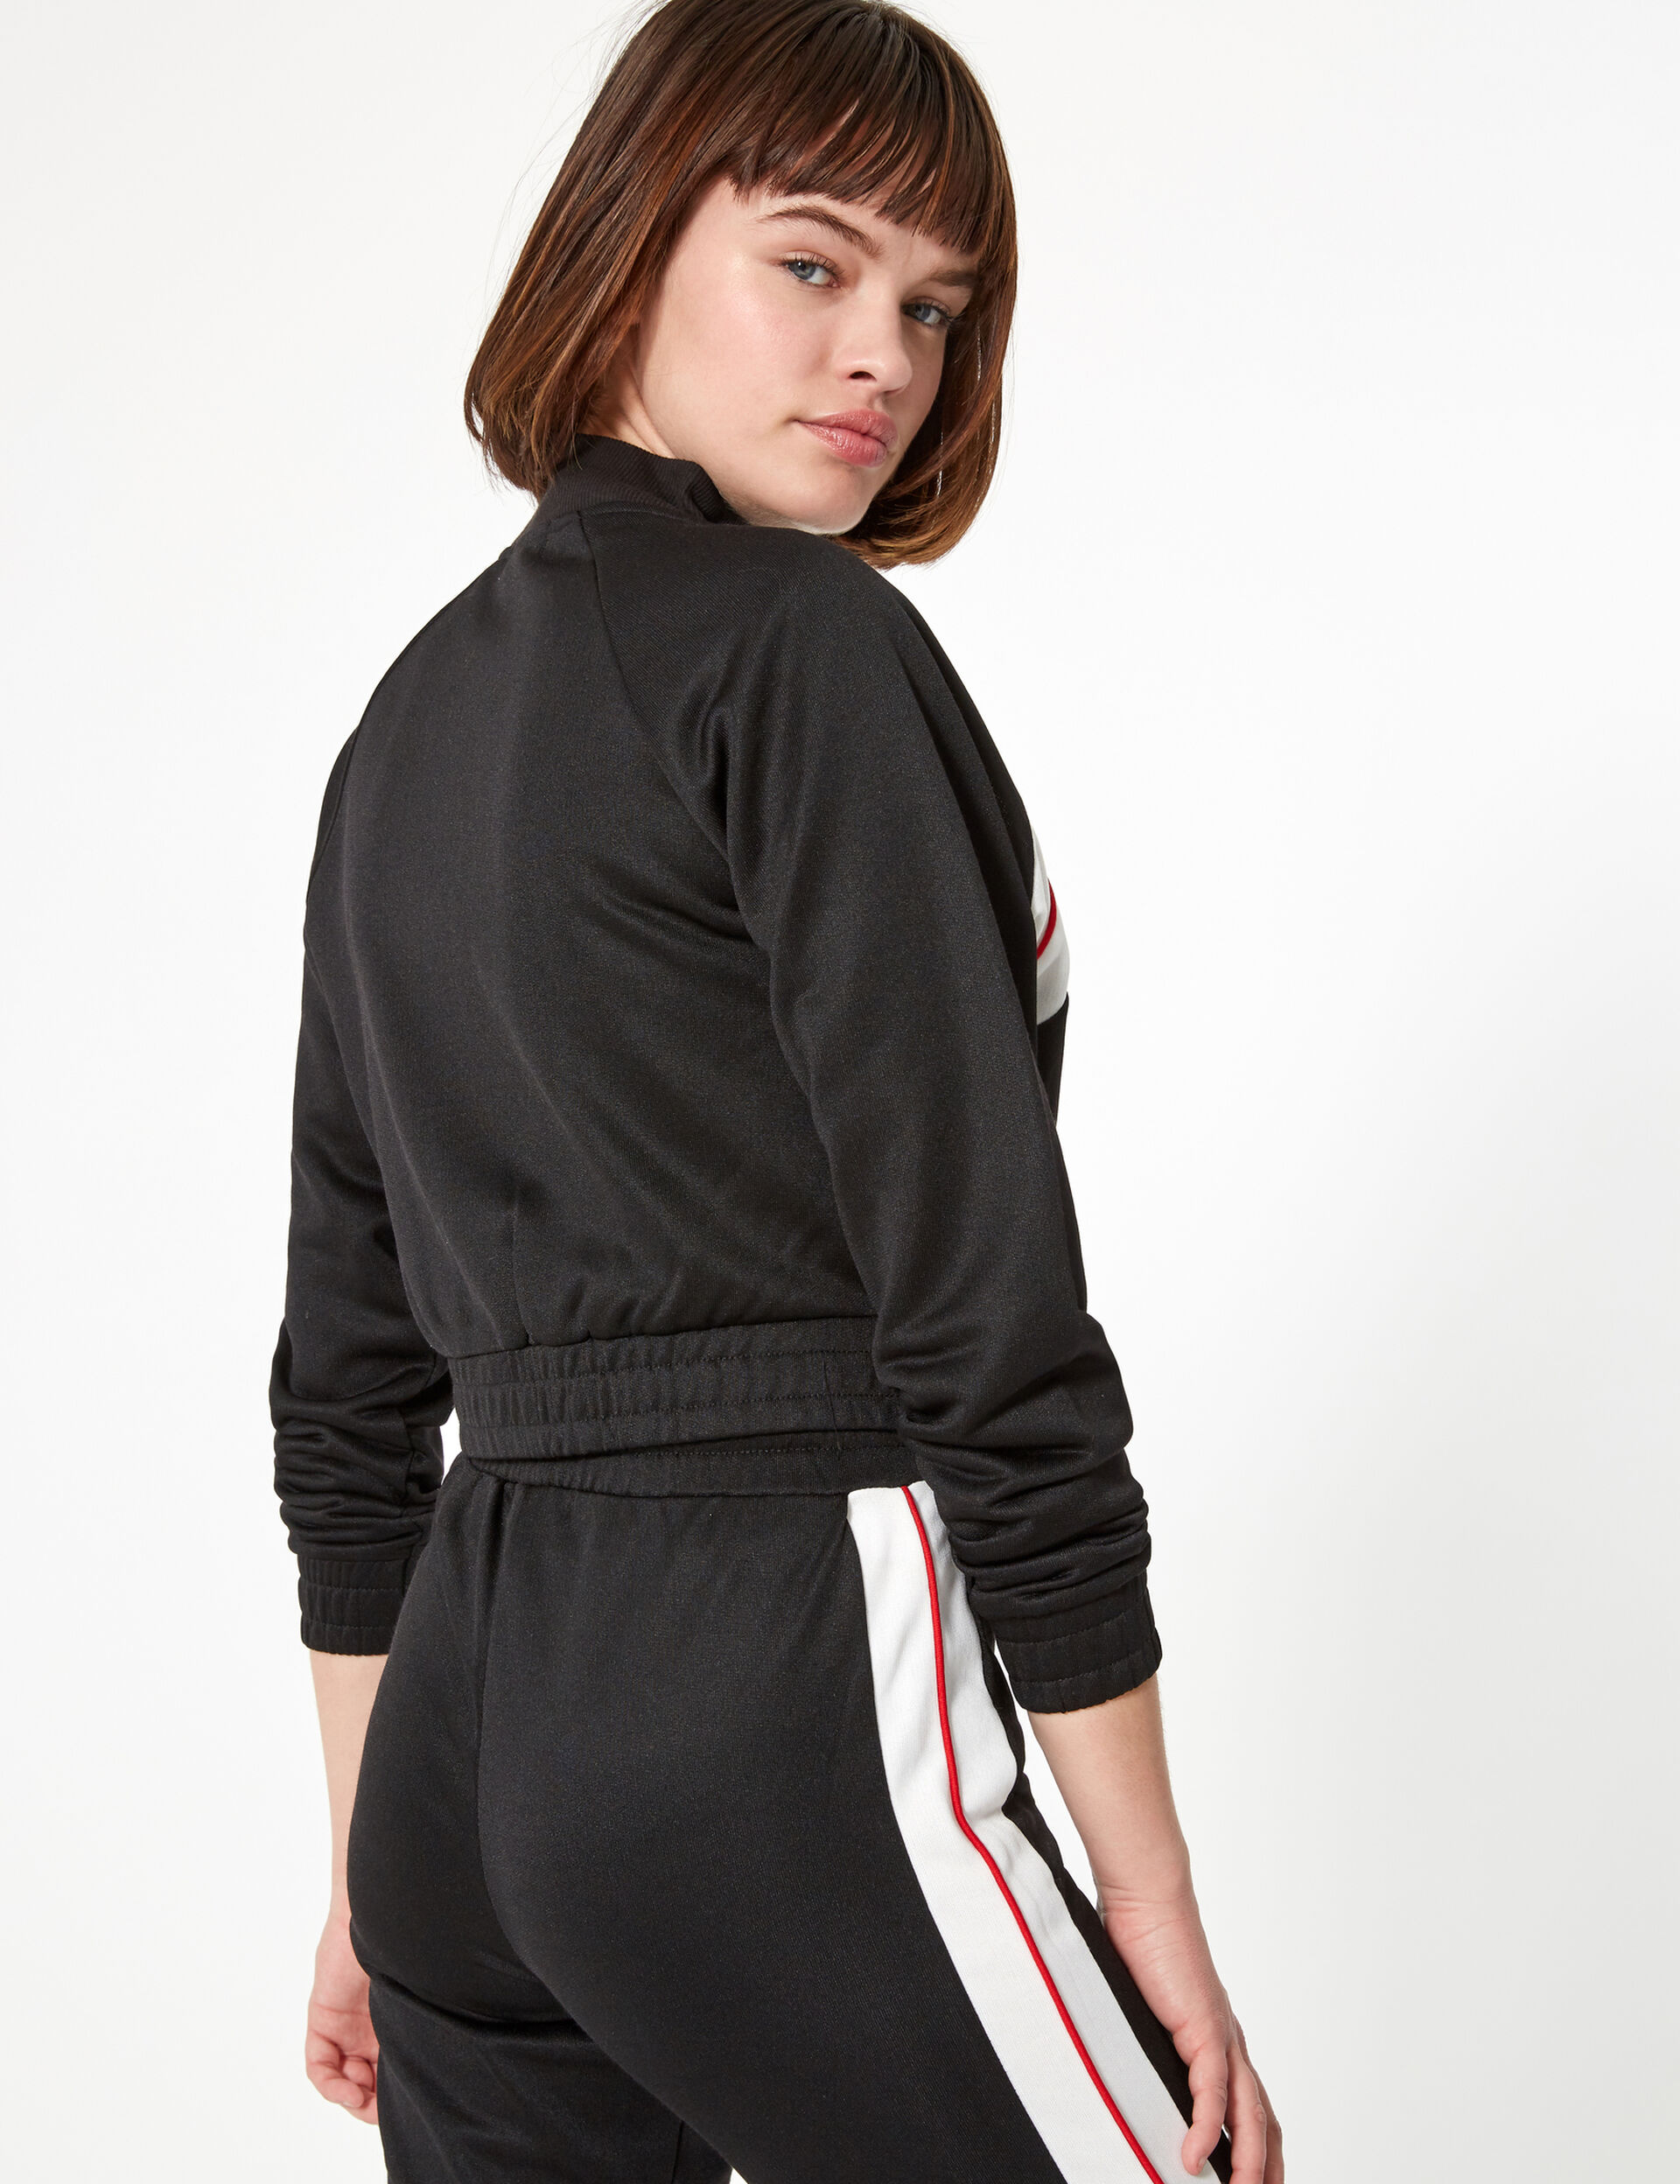 Black zip-up jogging jacket